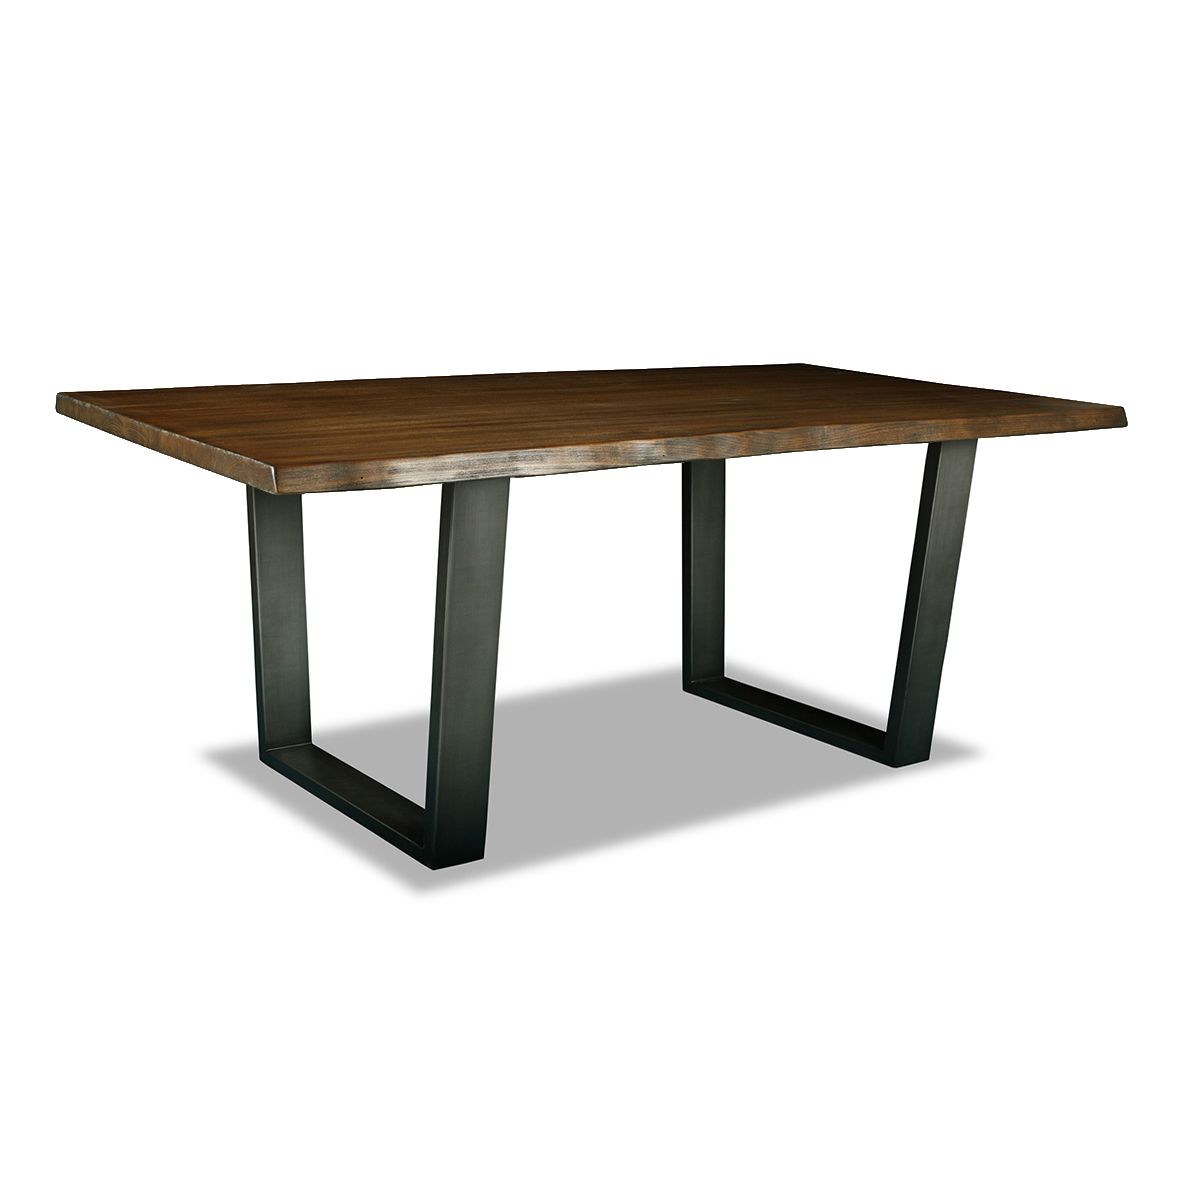 37+ Live edge dining table counter height Best Choice